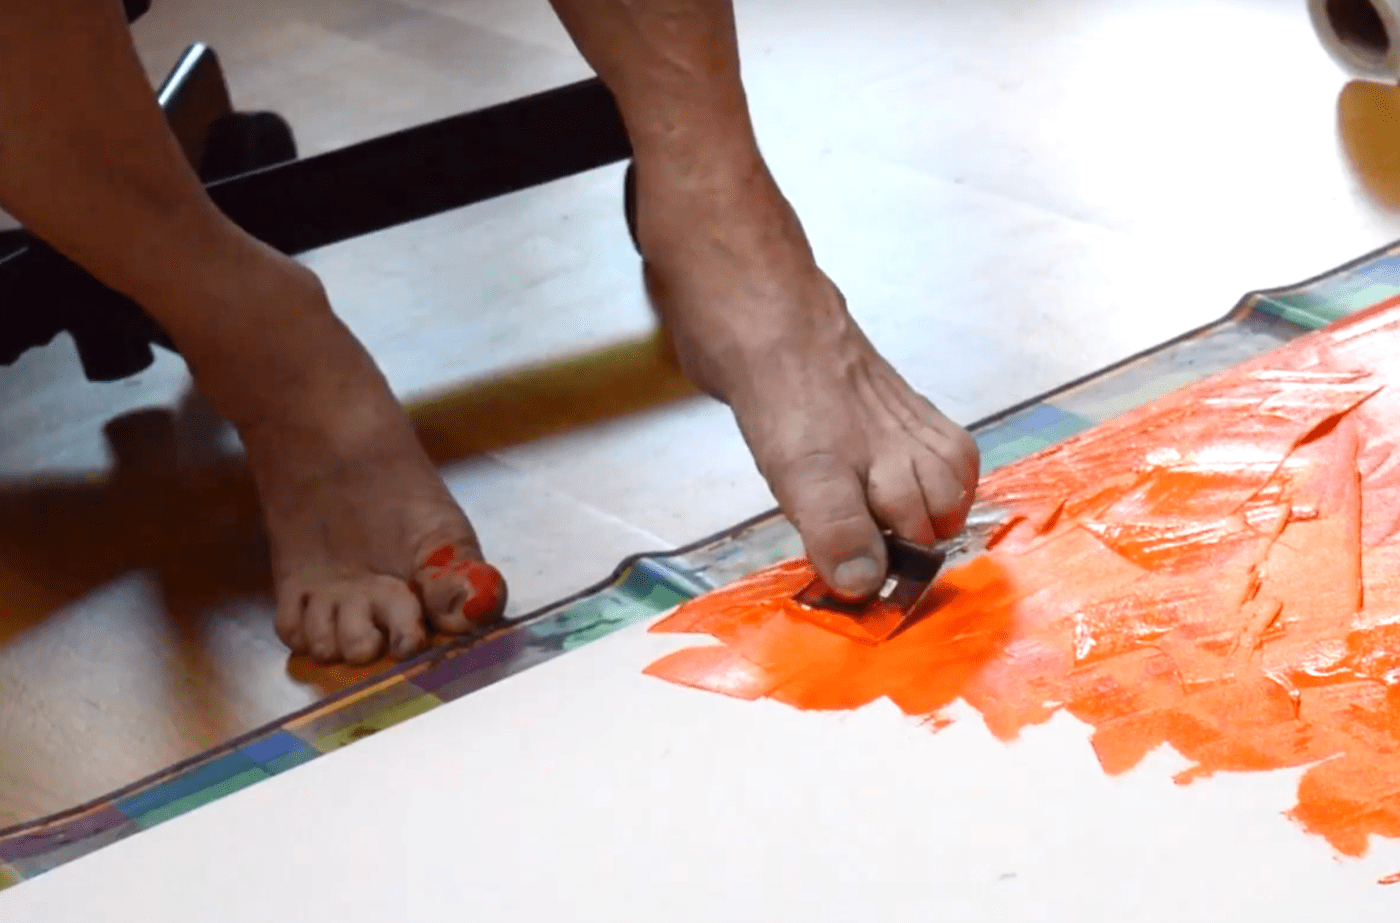 How Painting With Your Feet Changes Your Brain